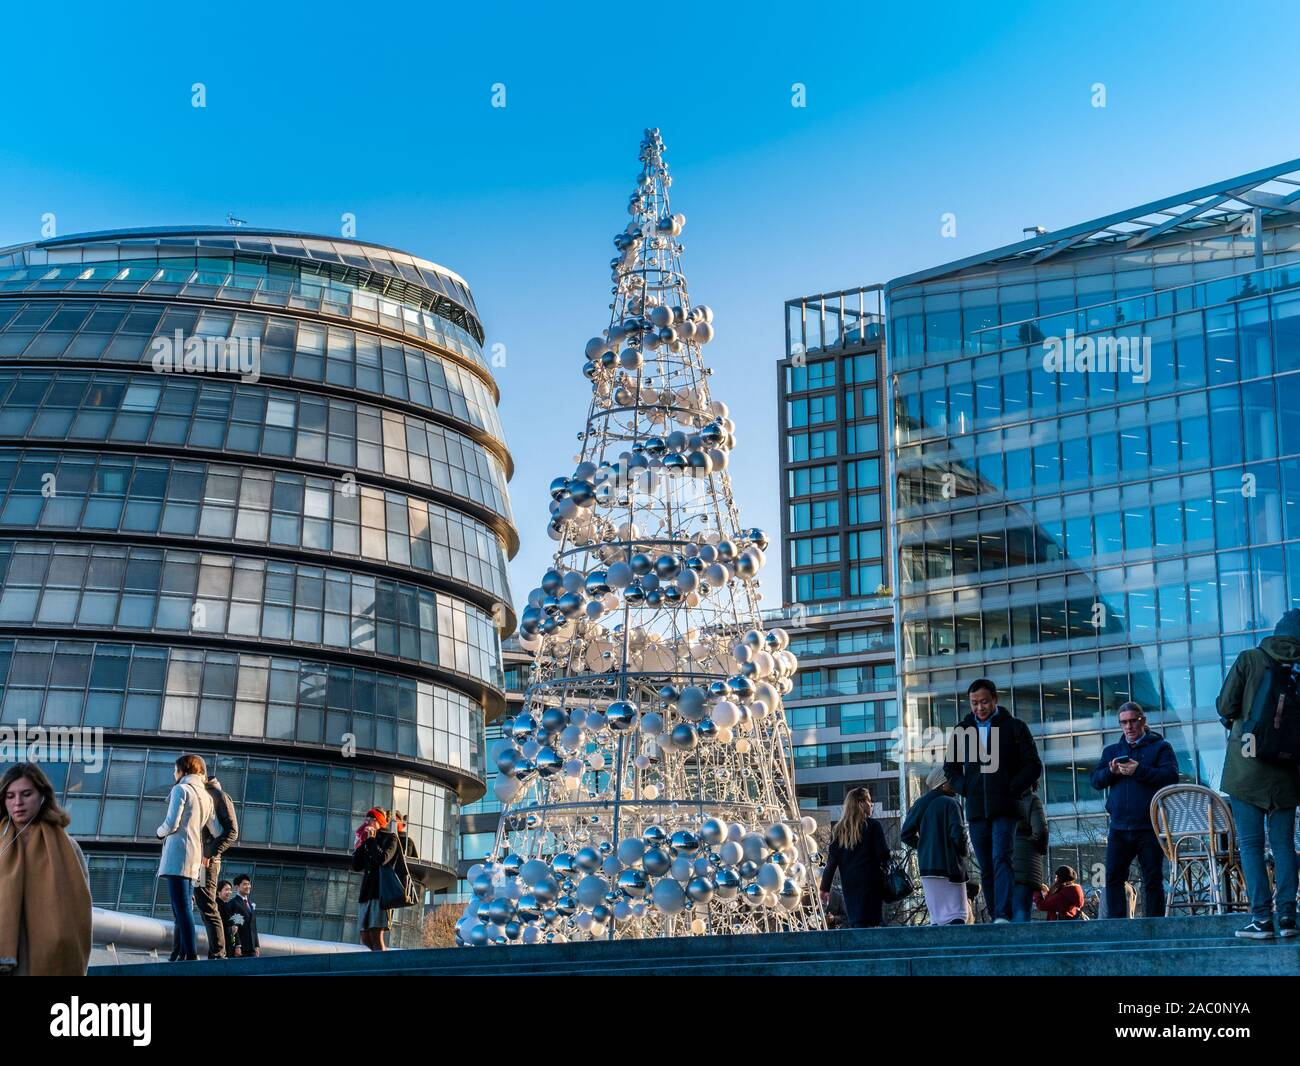 London, England, UK - November 29, 2019: Christmas tree decorated outdoors in a day time for winter holiday celebration in a beautiful town square of Stock Photo